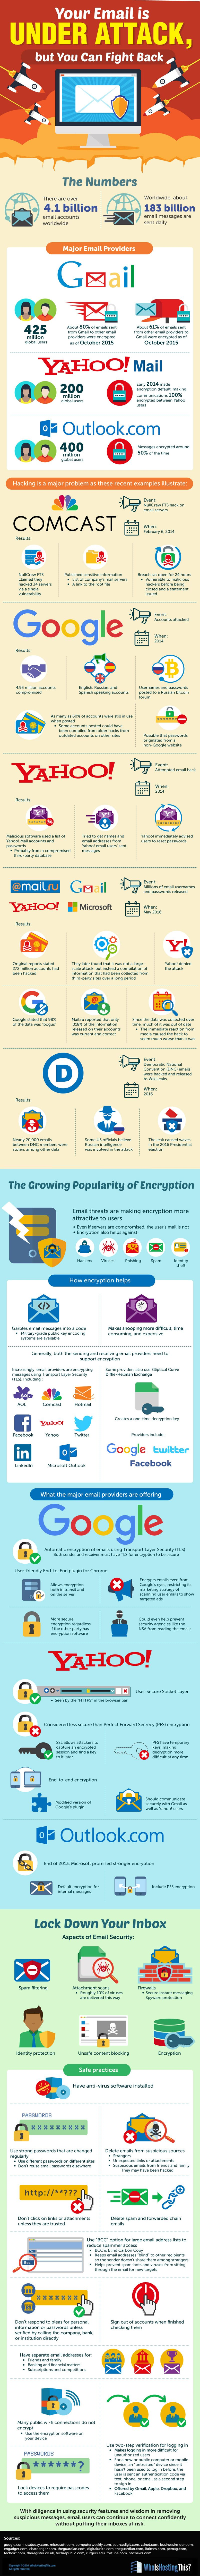 Your Email Is Under Attack But You Can Fight Back #Infographic